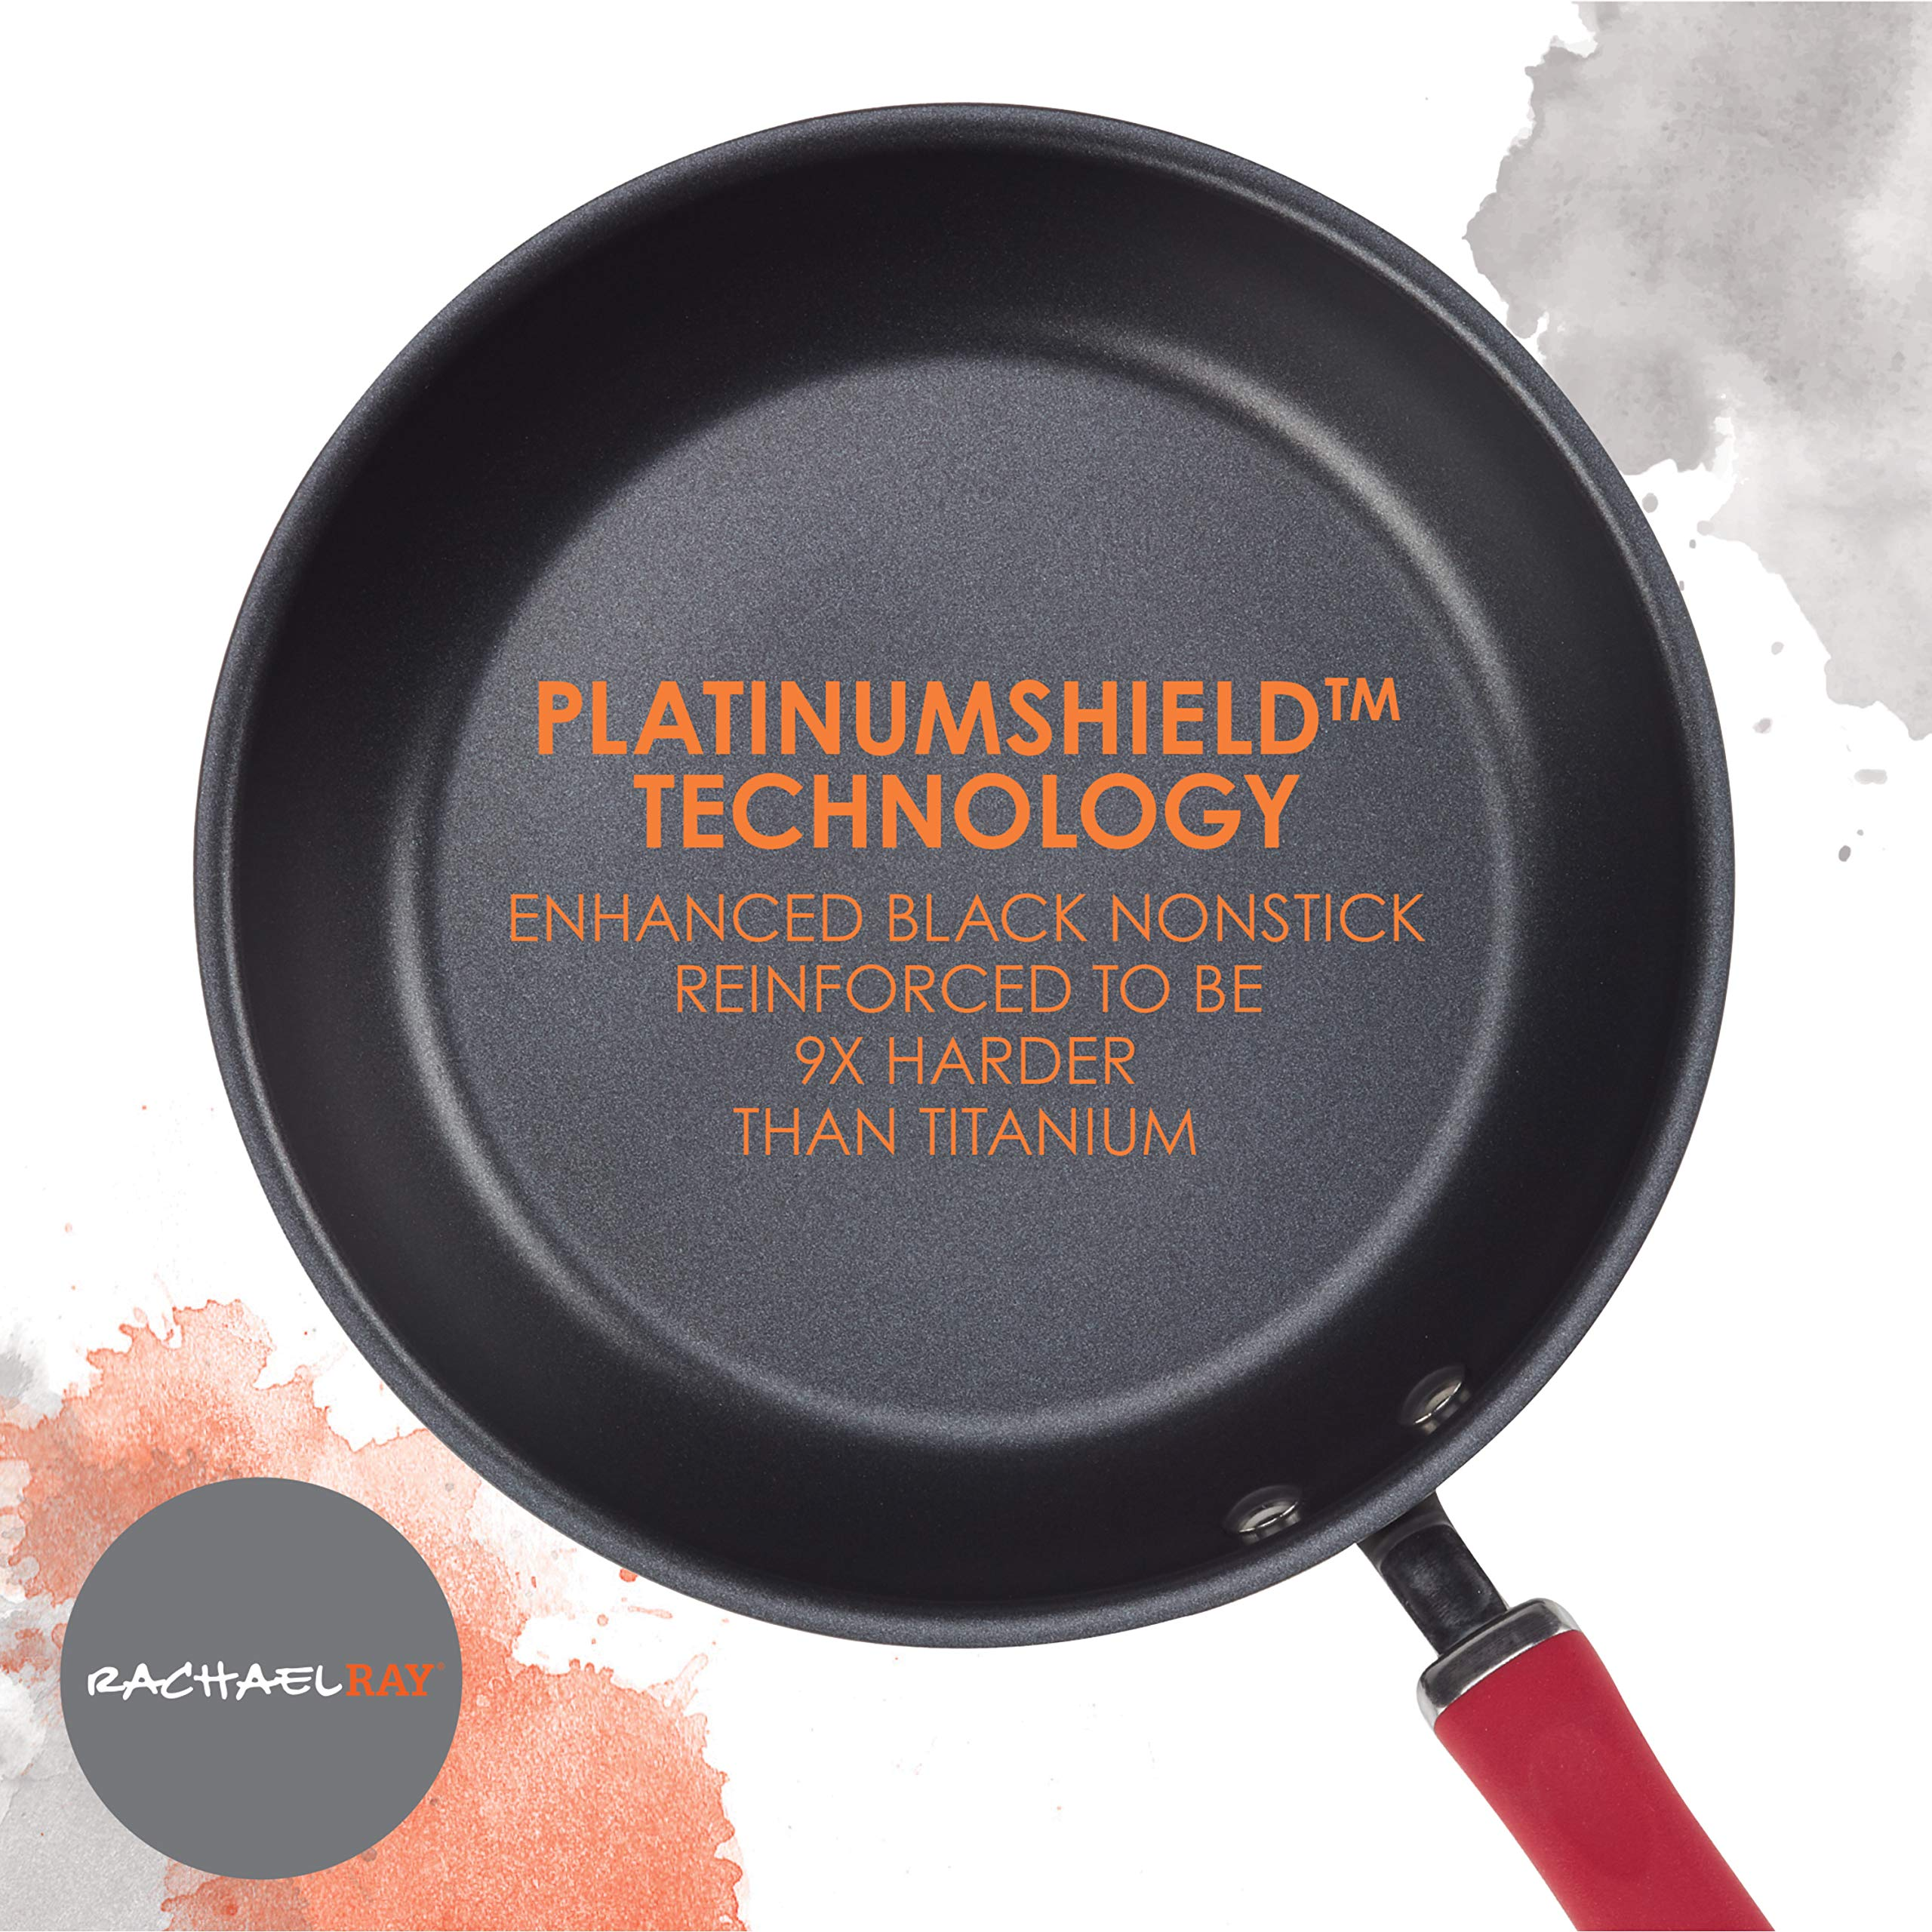 Rachael Ray Create Delicious Hard-Anodized Aluminum Nonstick Deep Skillet Twin Pack, 9.5-Inch and 11.75-Inch, Red Handles by Rachael Ray (Image #4)